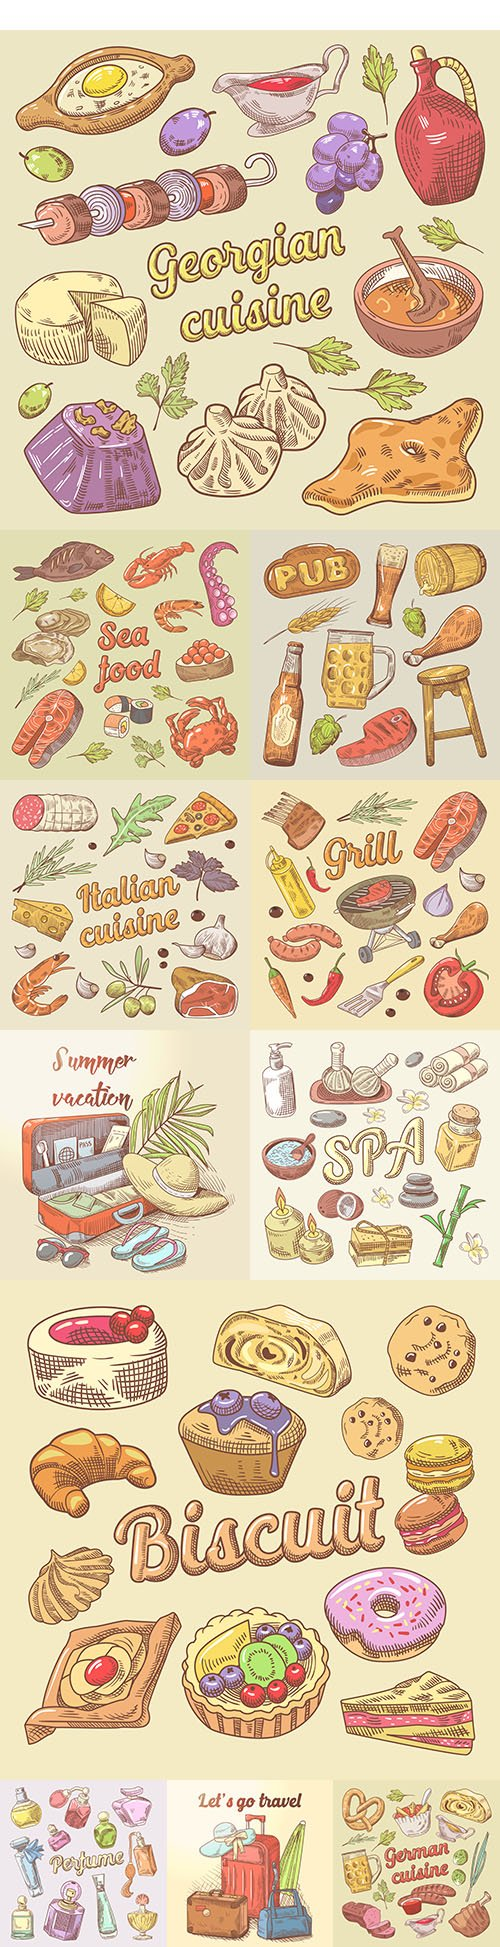 Doodle traditional dishes from different countries and cosmetics items